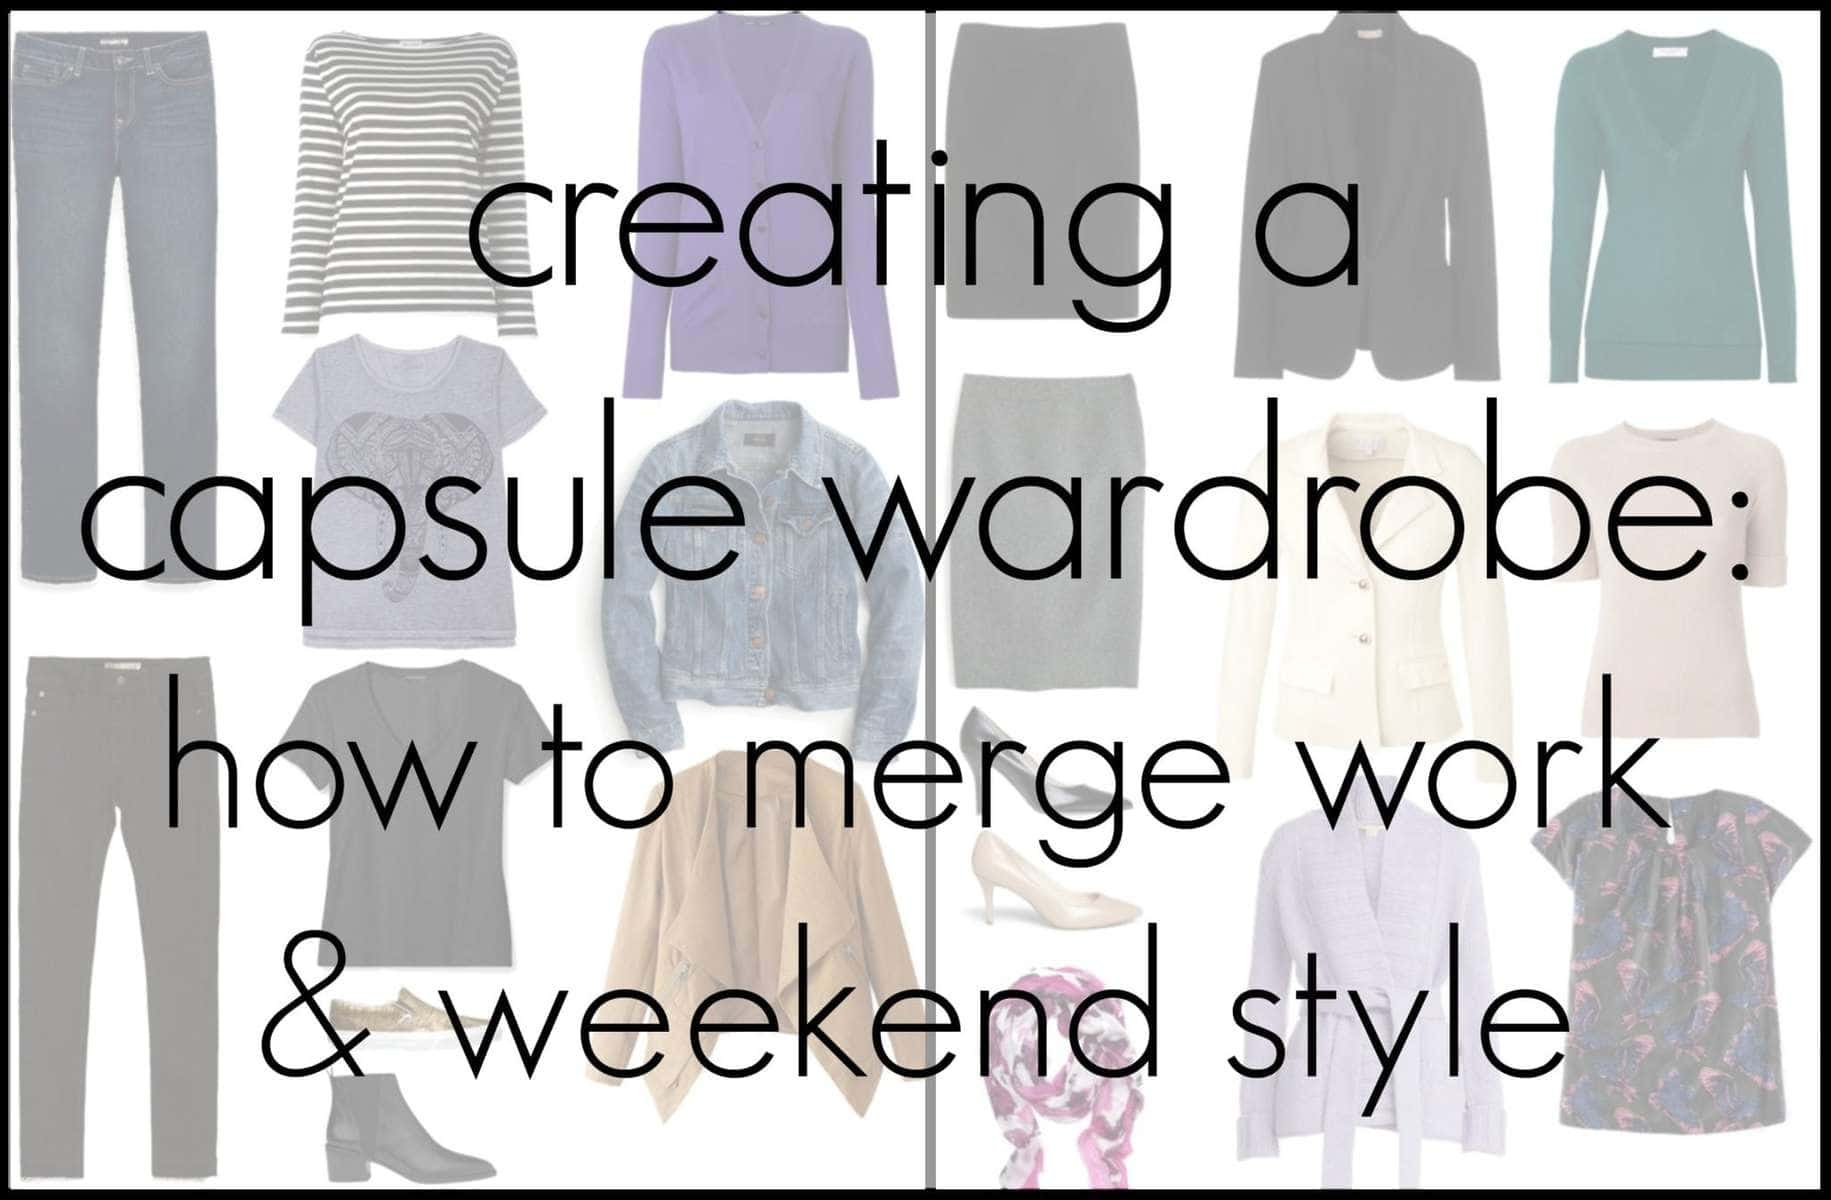 creating a capsule wardrobe - how to merge work and weekend style